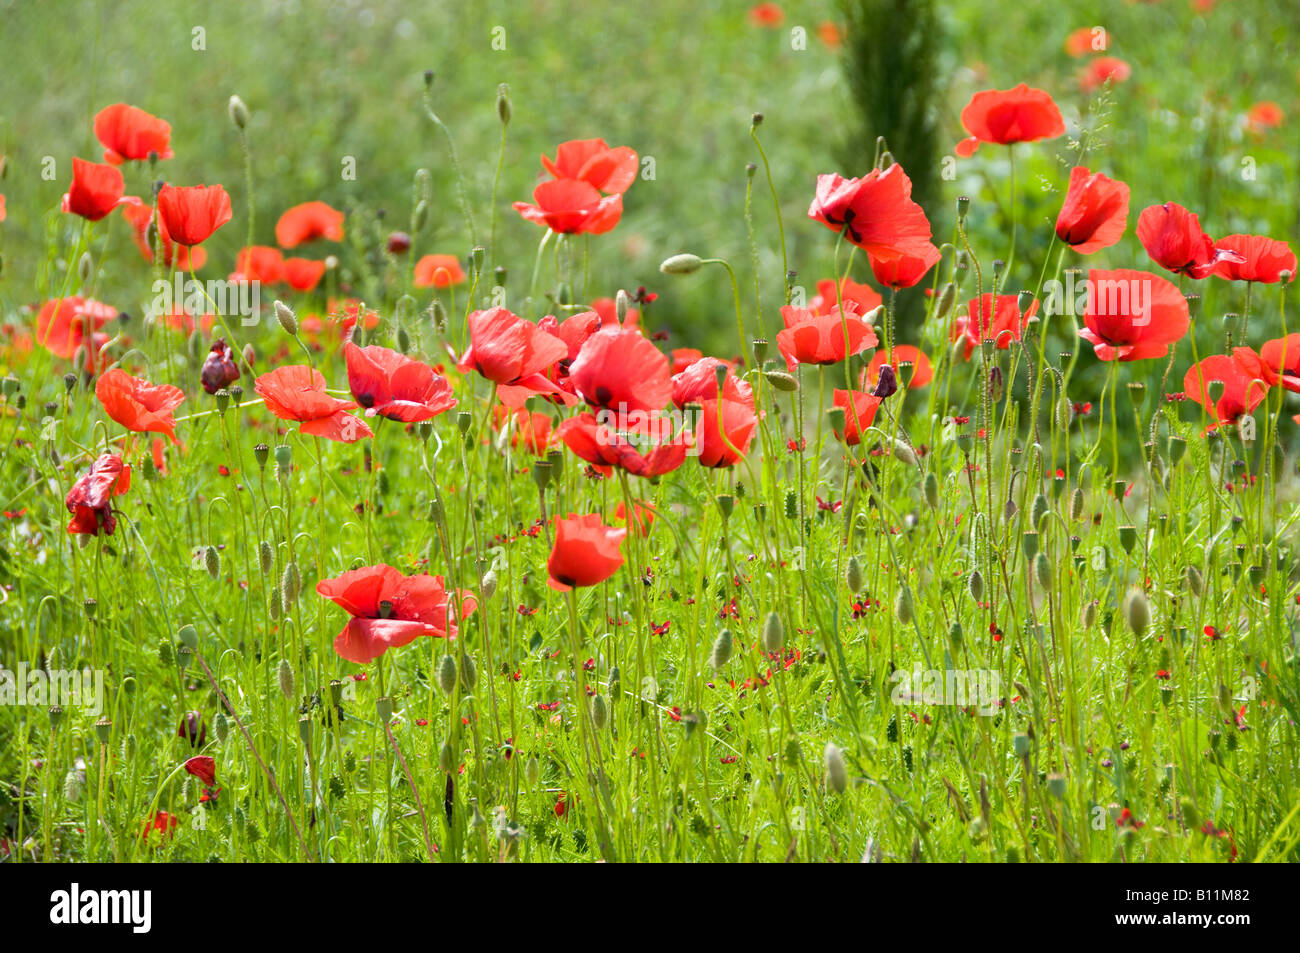 Red poppy flowers in a grass field - Stock Image